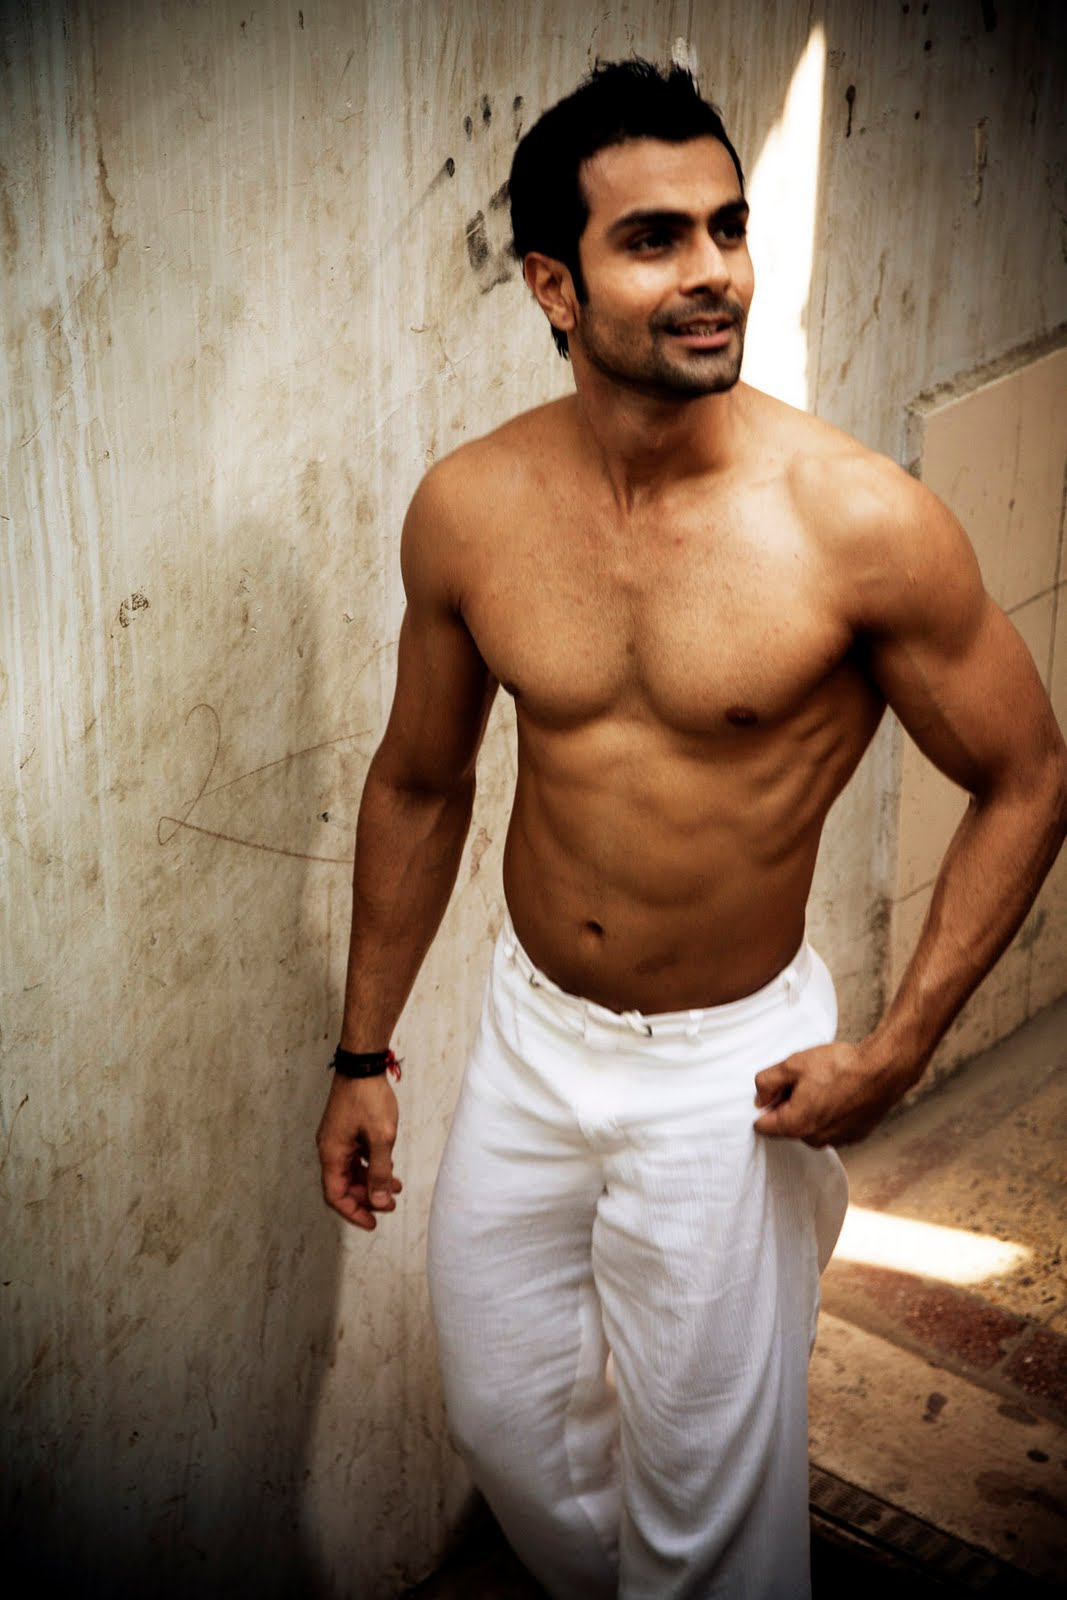 Ashmit patel nude pics agree with